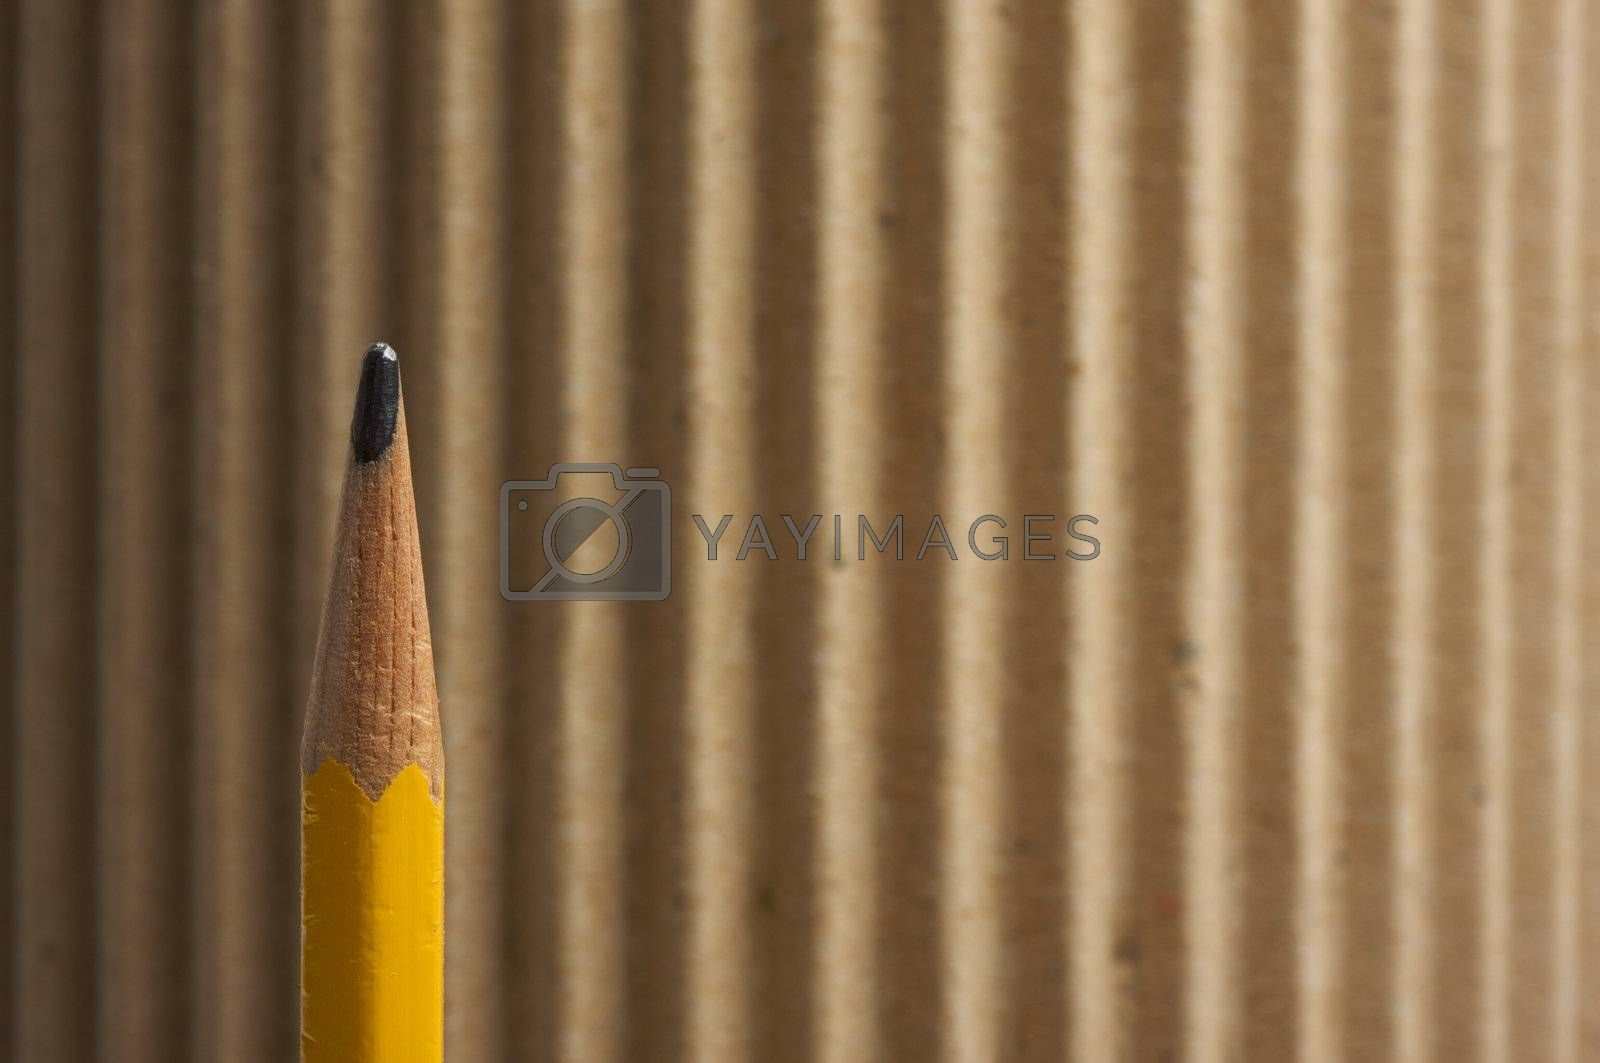 Rounded Corrugated Cardboard Background with Narrow Depth of Field.